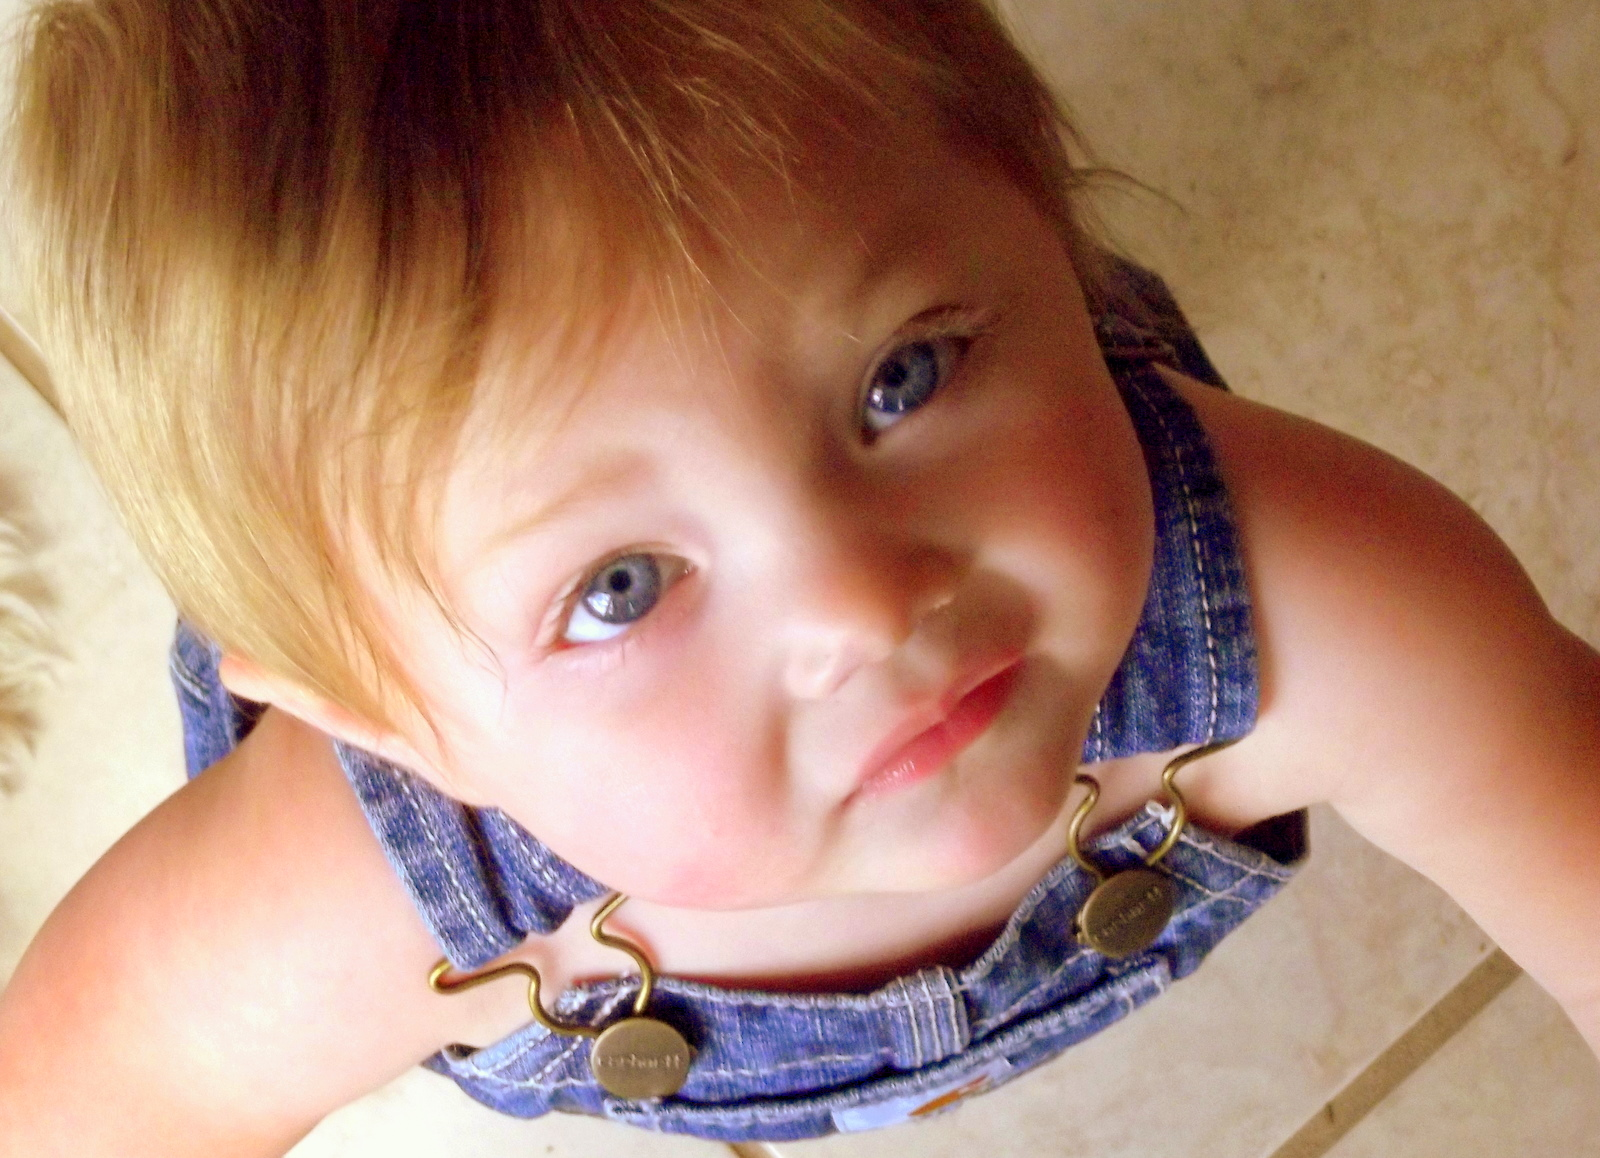 Blue Eyes Cute Babies HD wallpapers | HDesktops.com Cute Baby Girls With Brown Hair And Blue Eyes